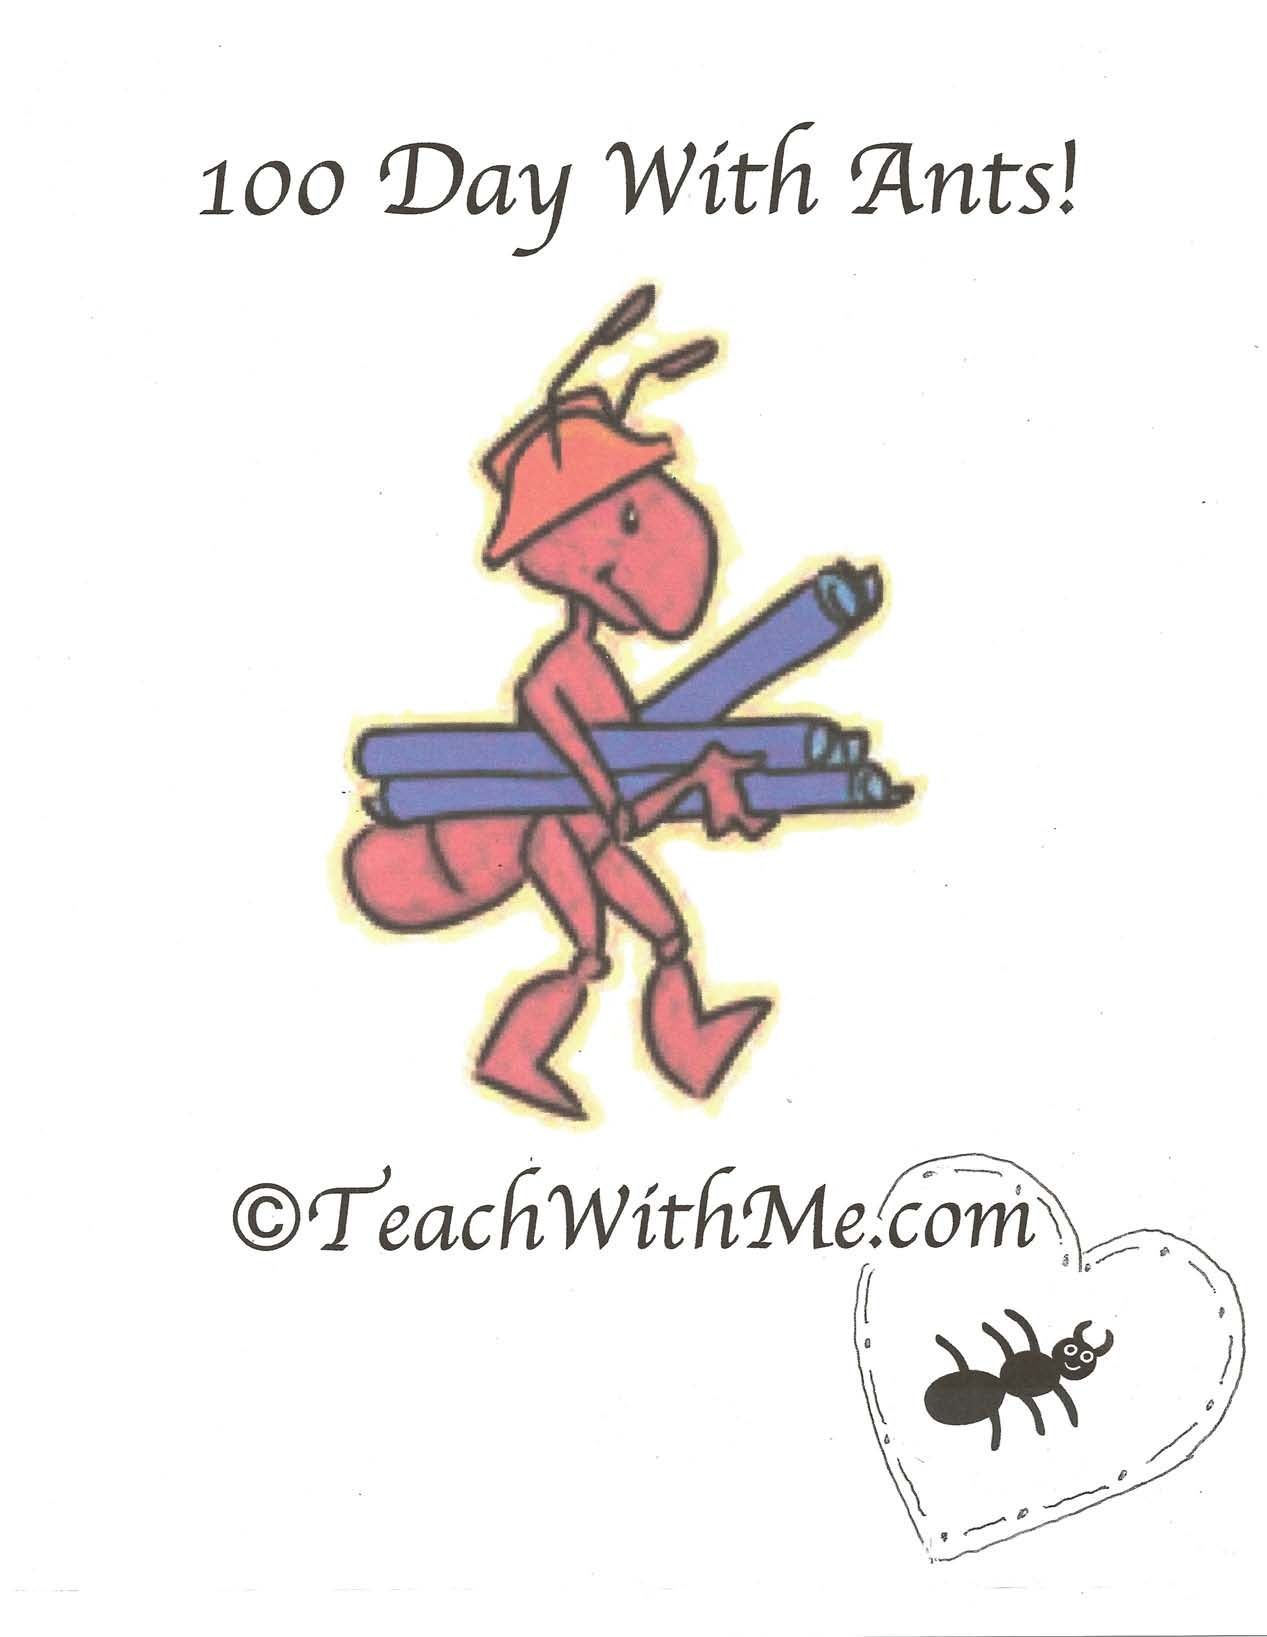 100 Day With Ants